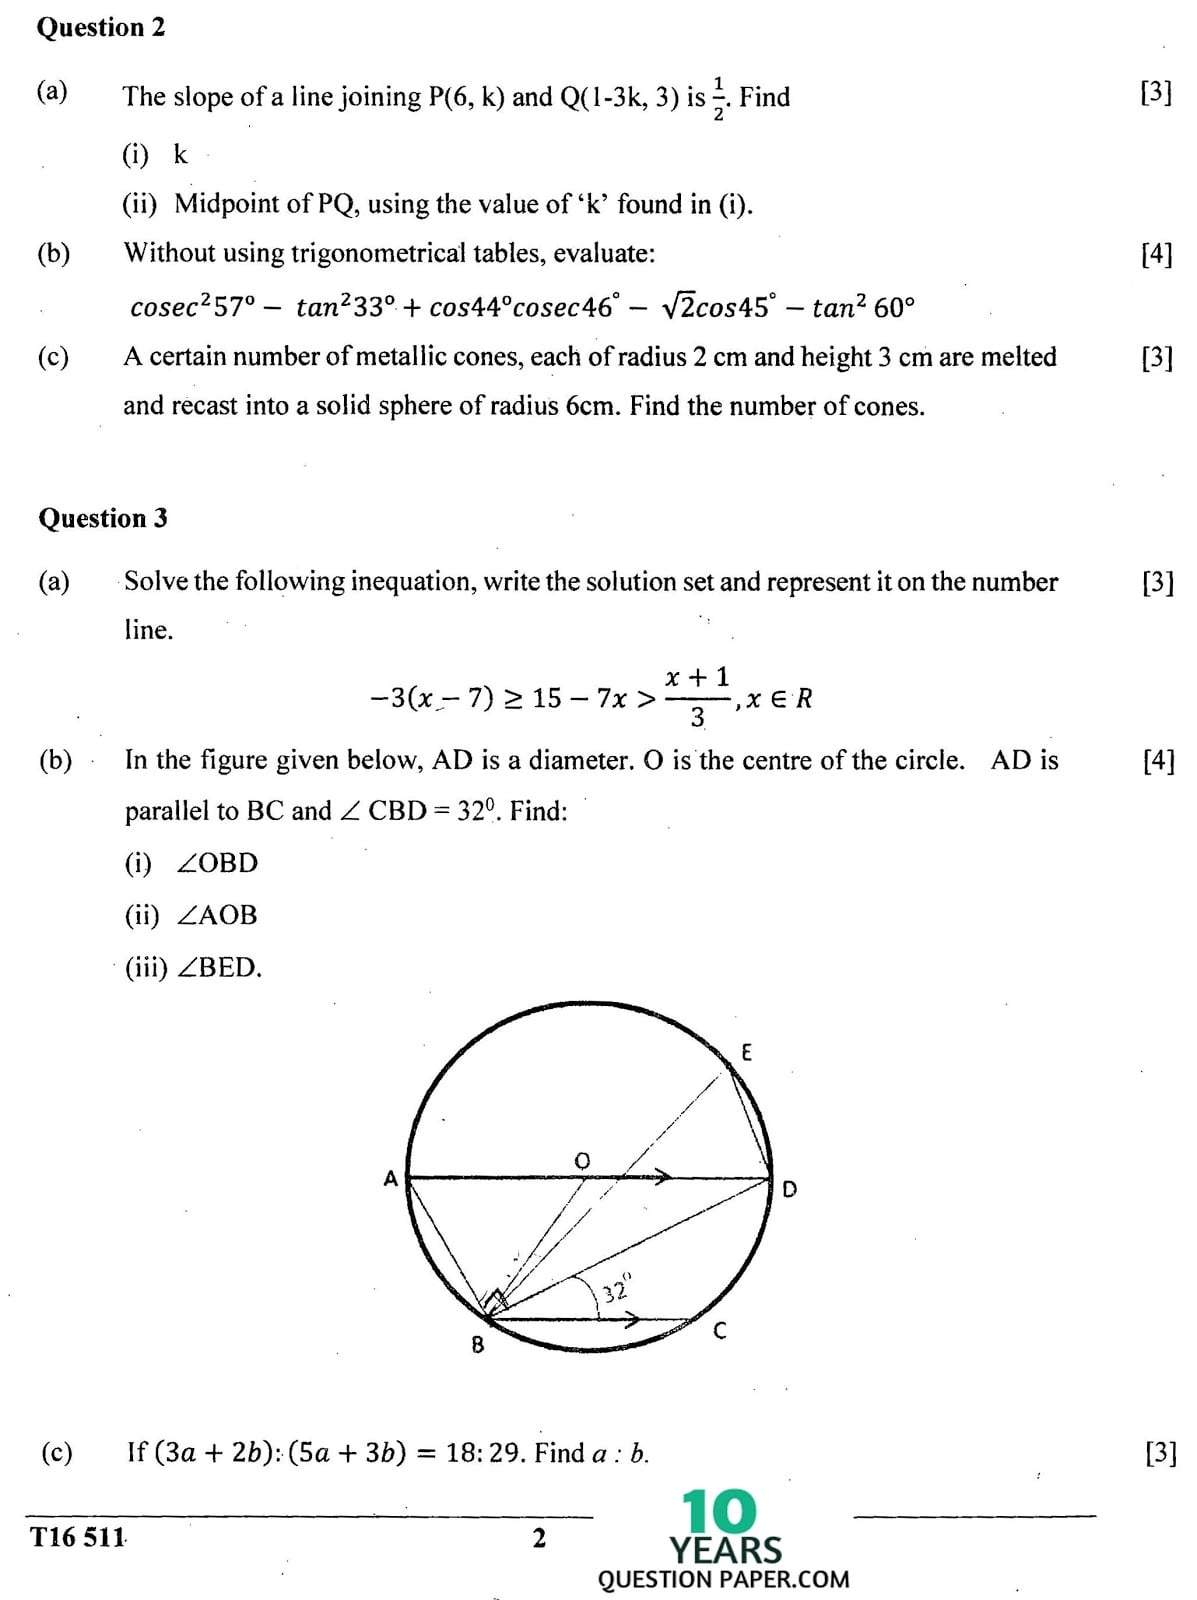 ICSE Class 10 Mathematics 2016 Question Paper